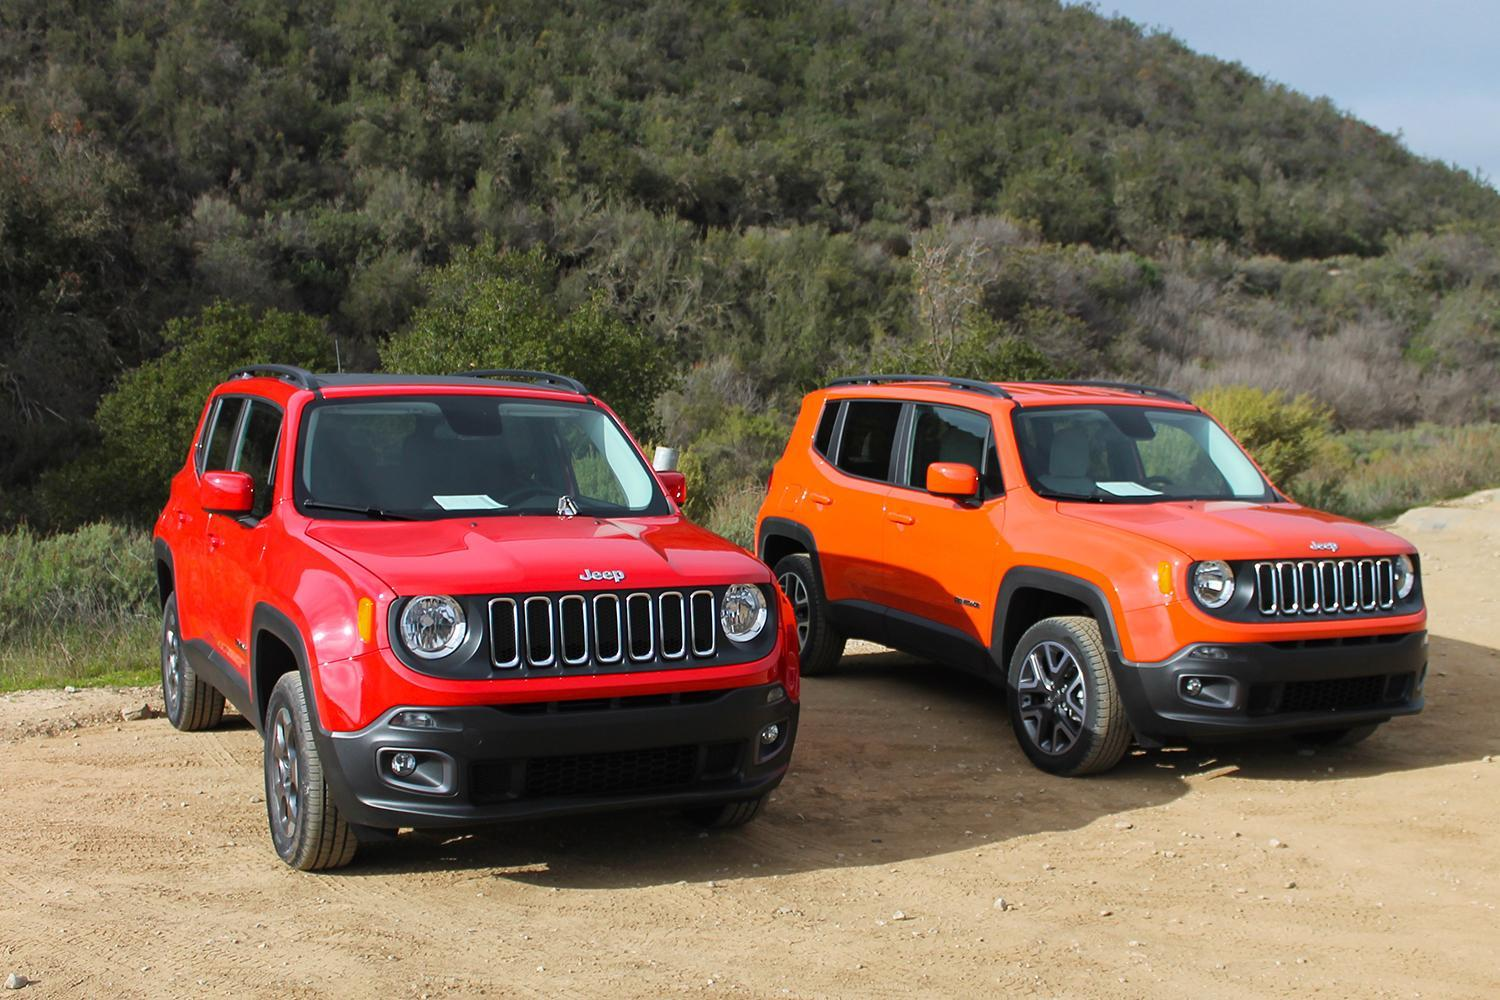 fiat chrysler recalls 410 000 vehicles for wiring harness issue fiat chrysler wiring harness recall k jeep renegade